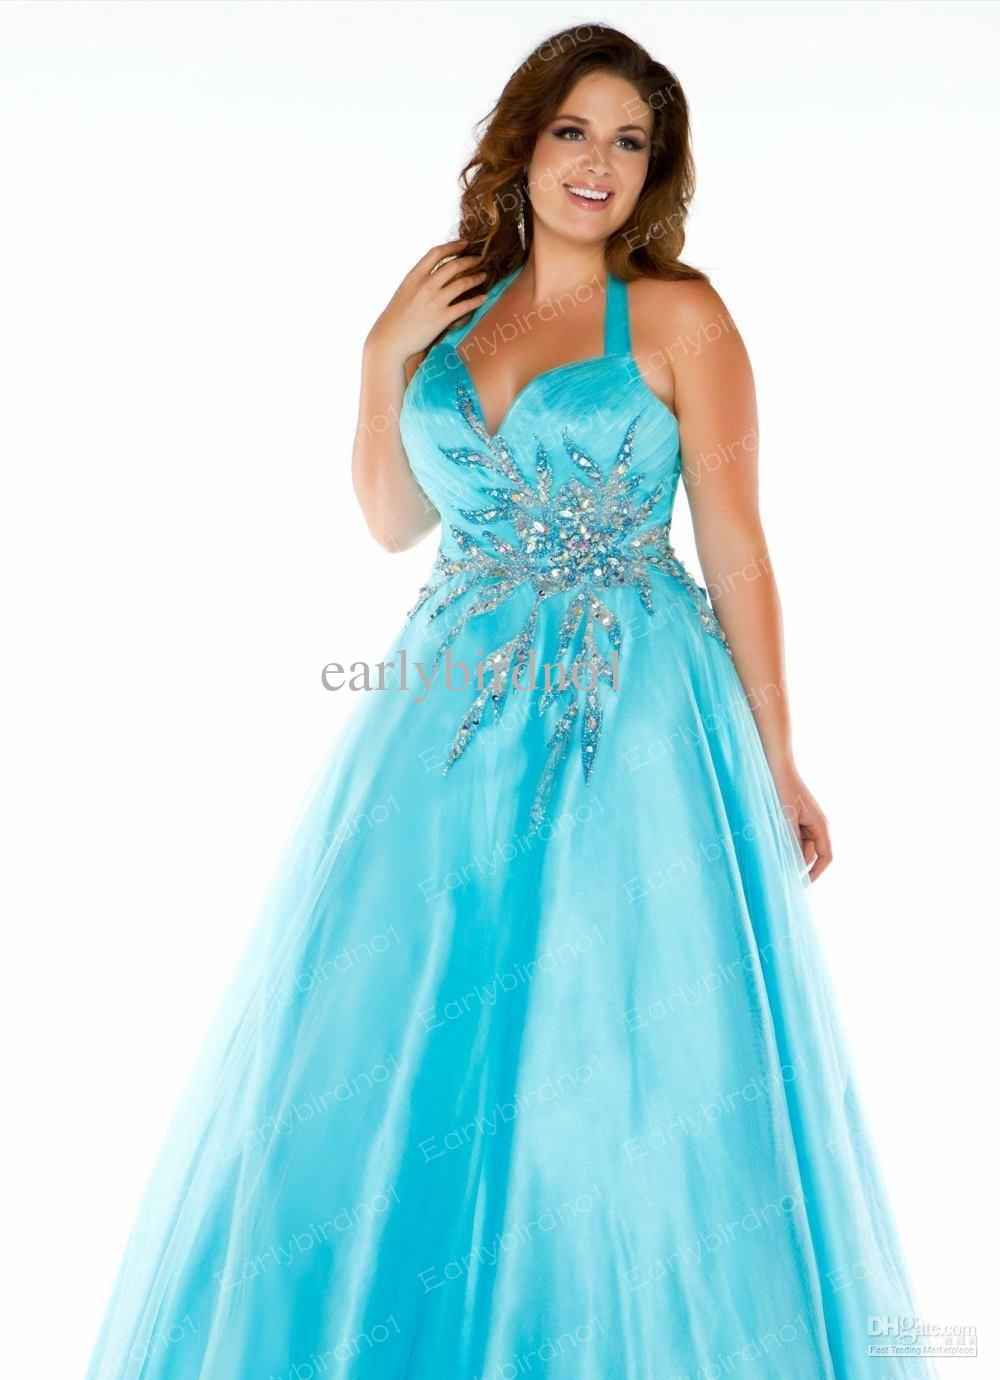 Awesome Occasion Dresses Size 22 Gallery - Mikejaninesmith.us ...